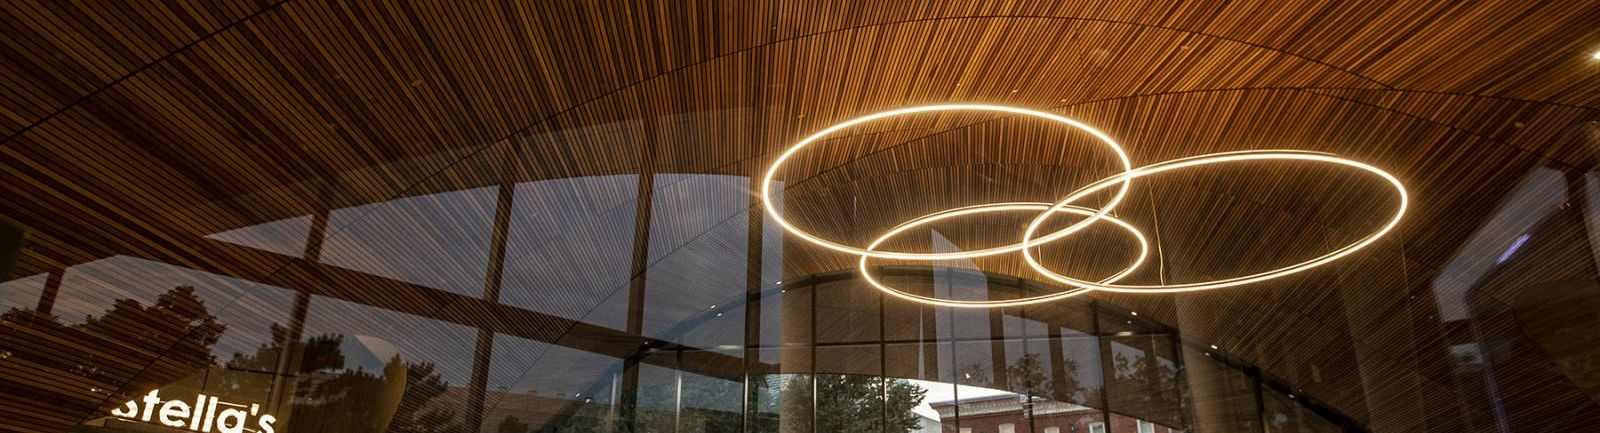 Abstract of the lighting in the lobby of Temple's Charles library.